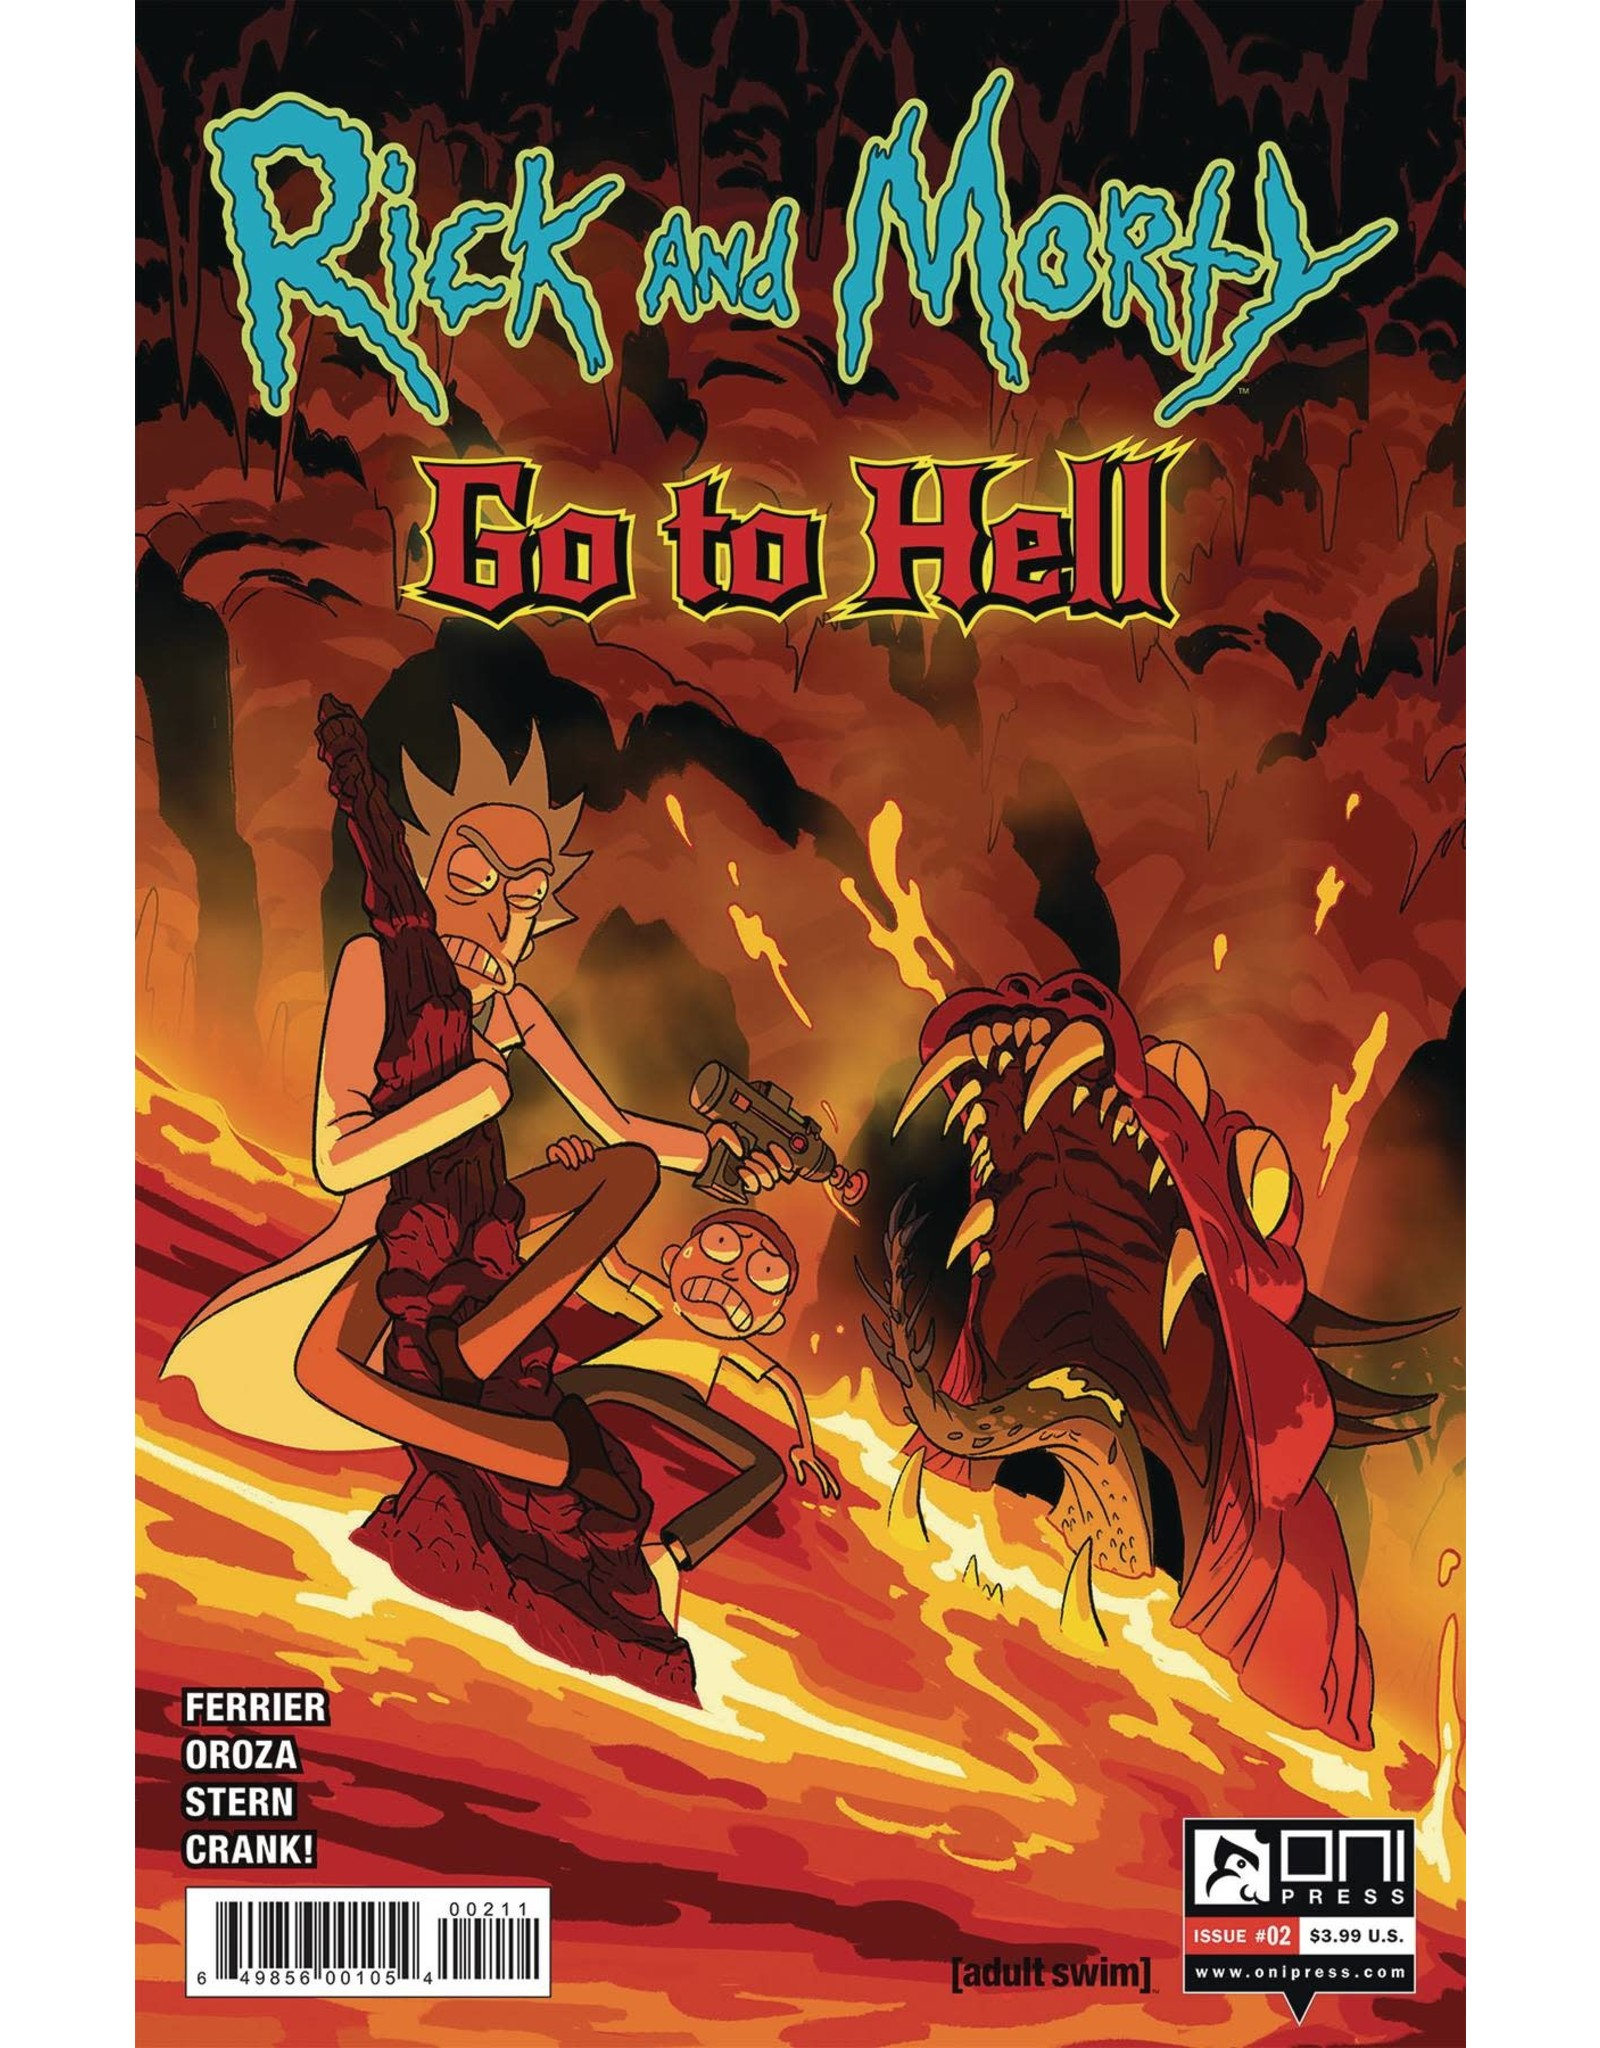 ONI PRESS INC. RICK AND MORTY GO TO HELL #2 CVR A OROZA